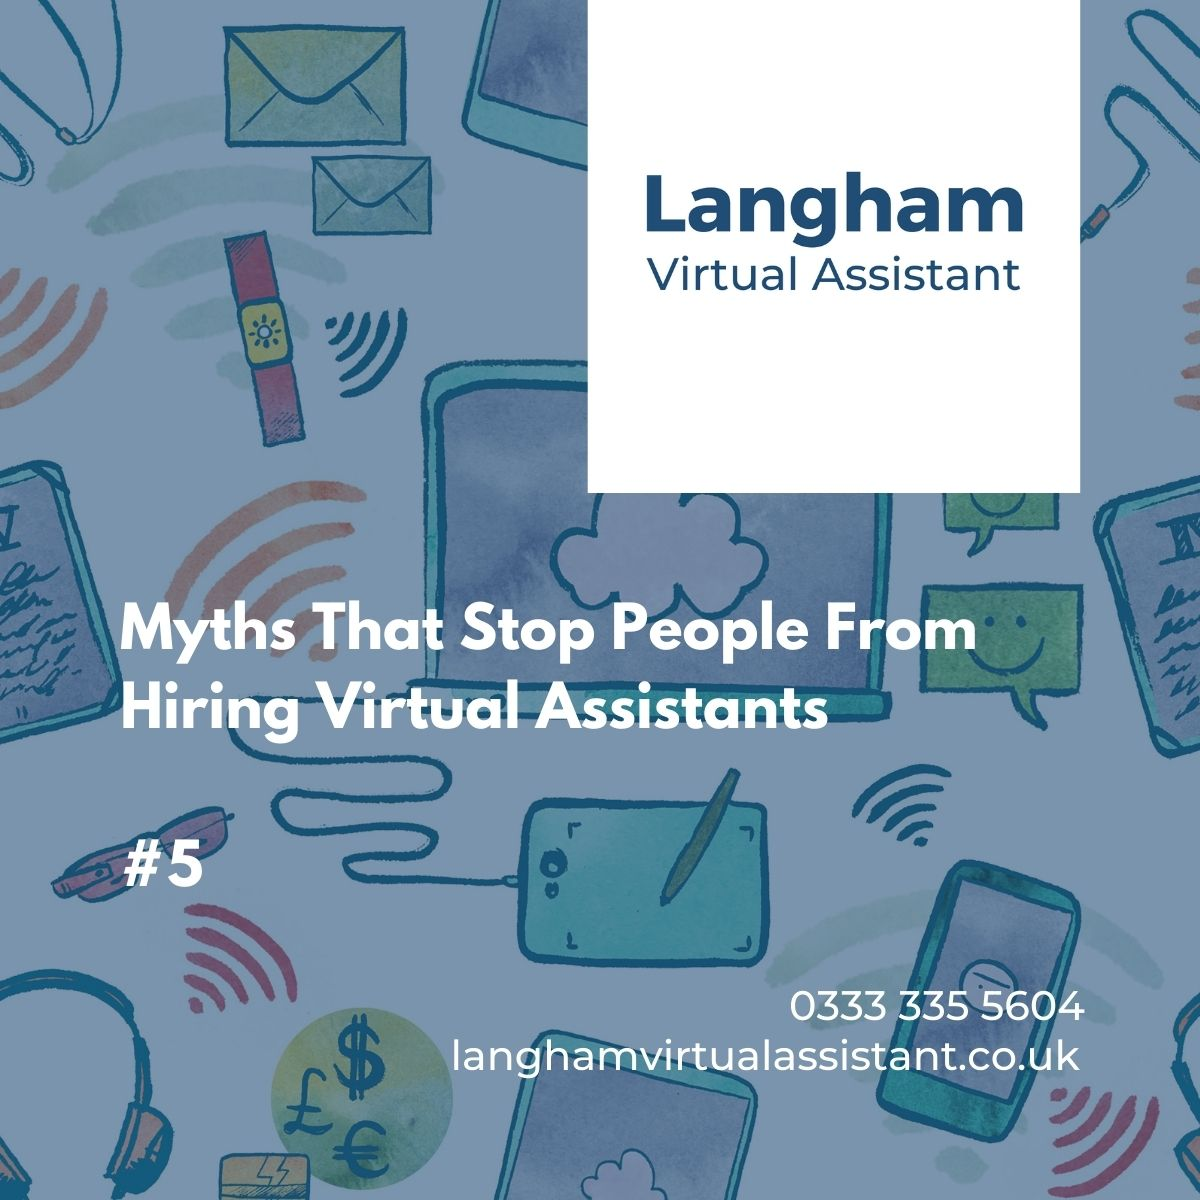 Myths That Stop People From Hiring Virtual Assistants